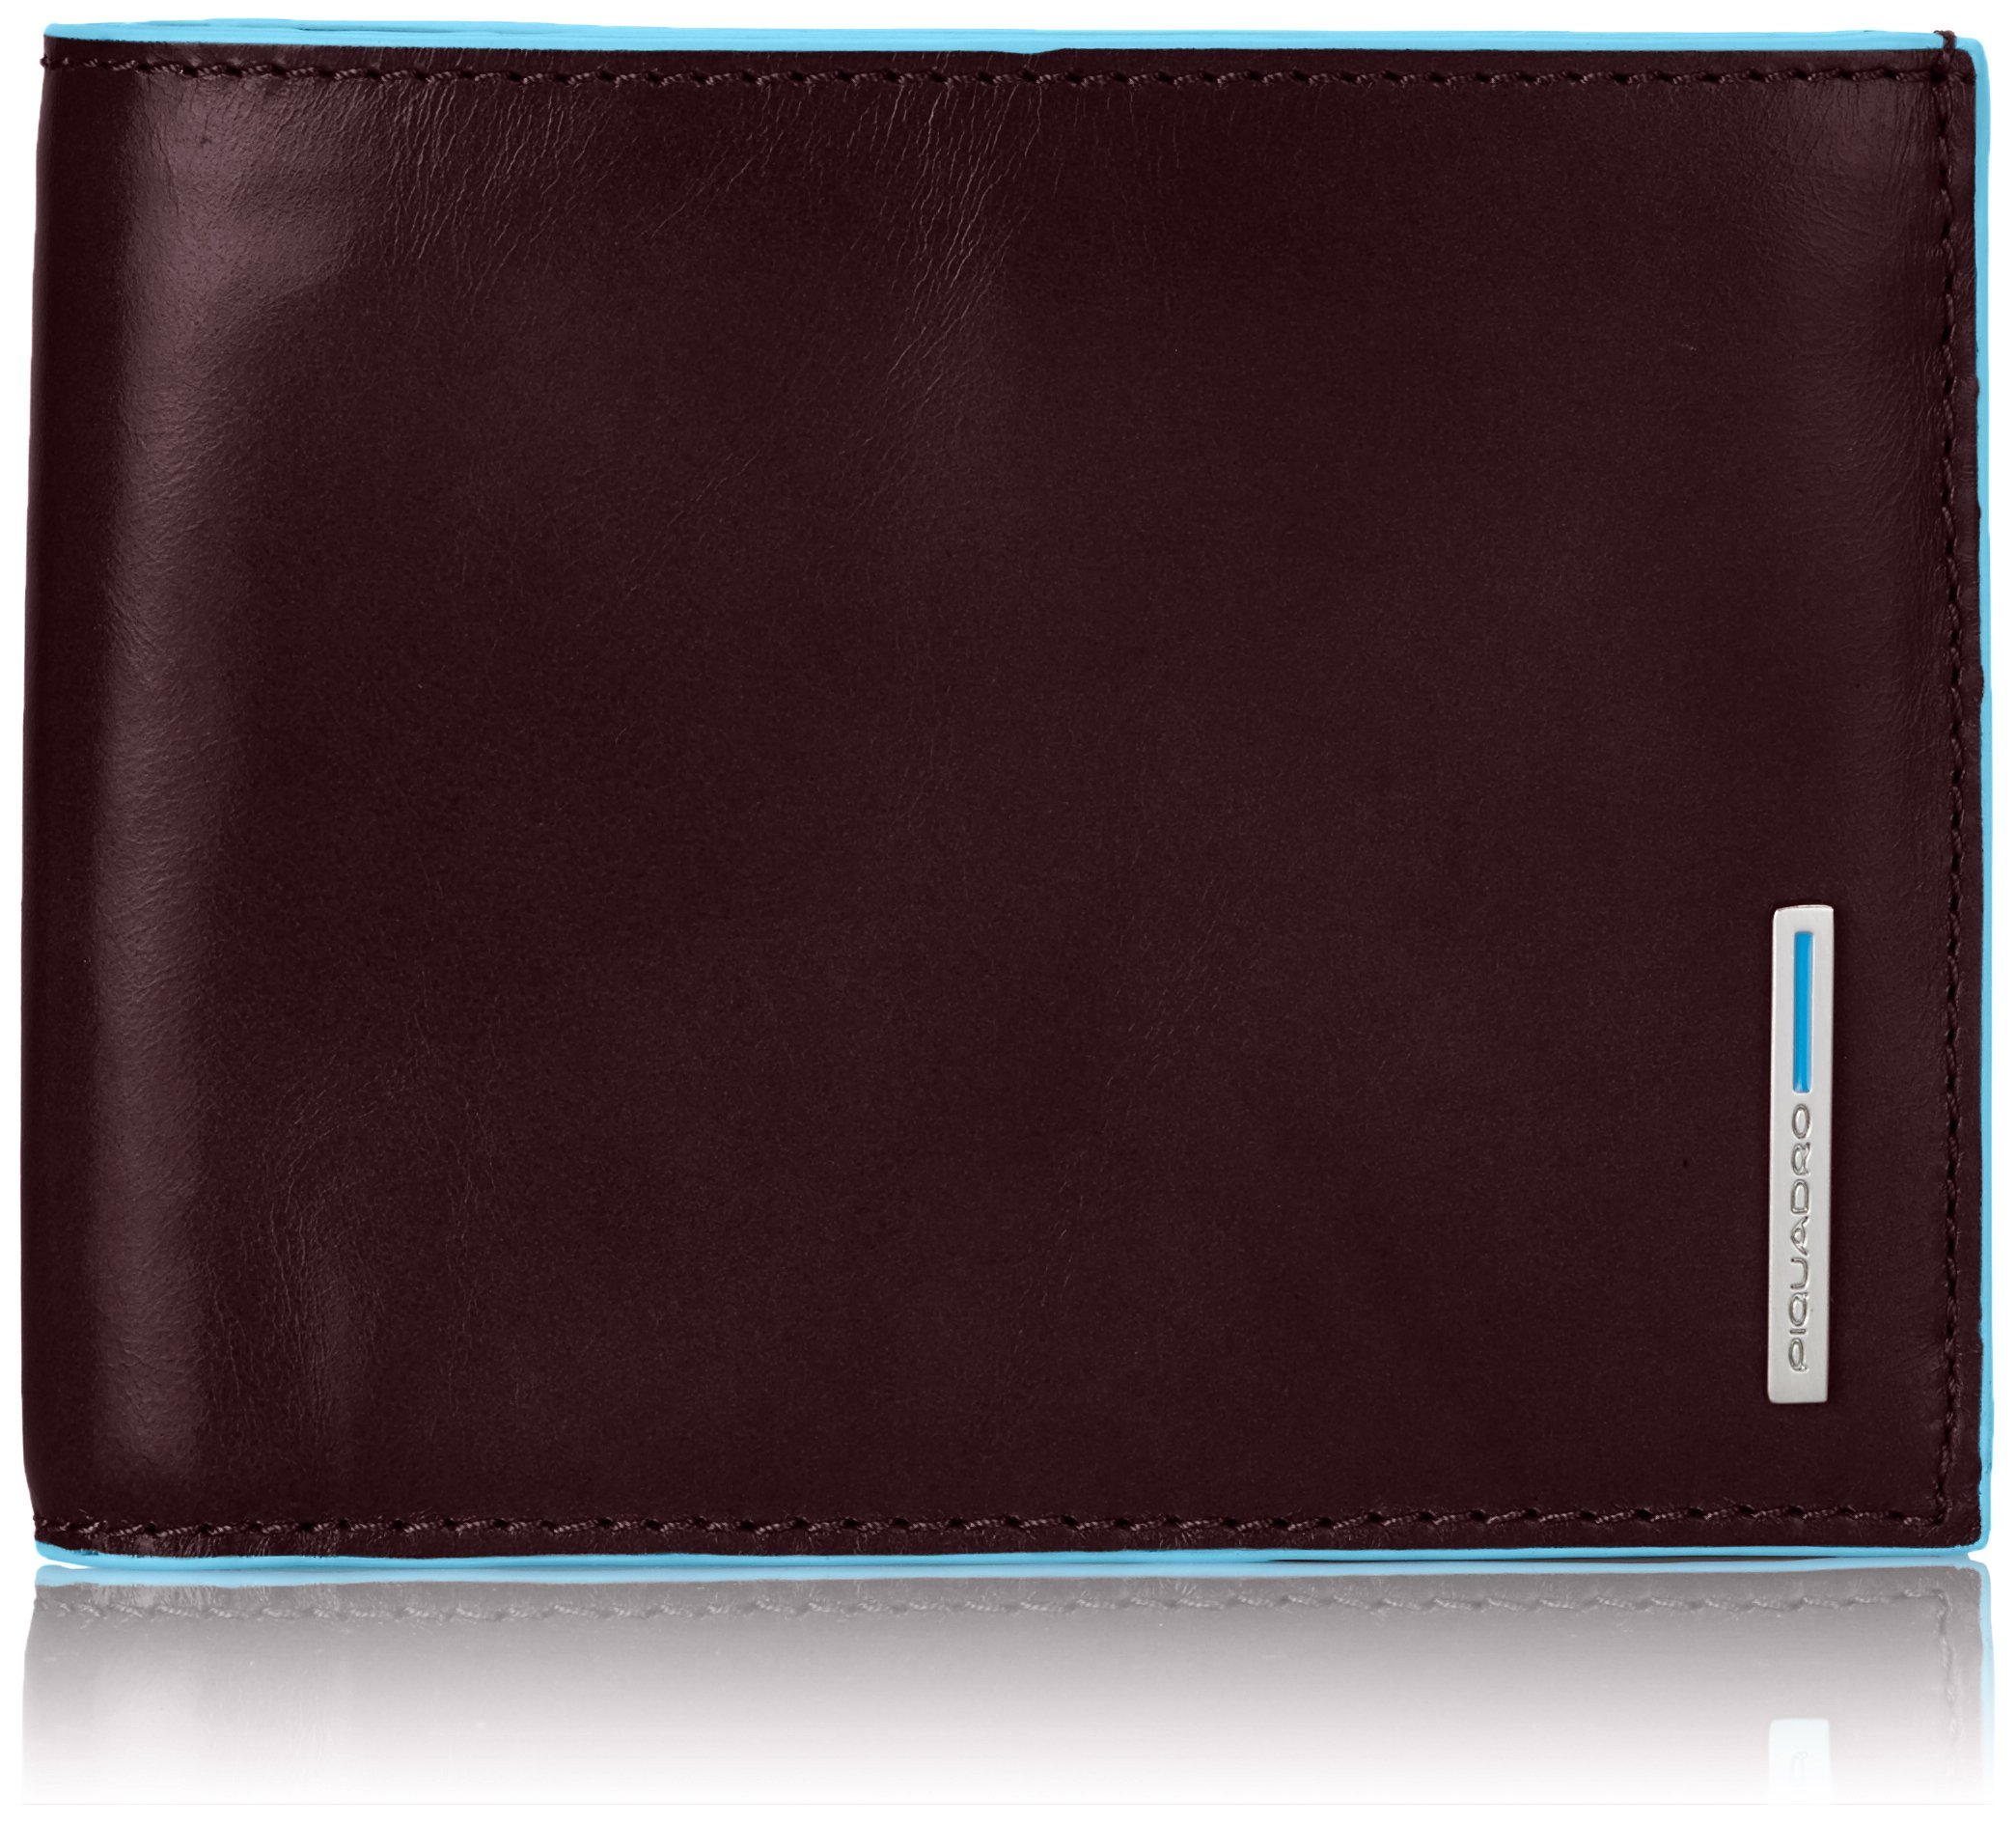 Piquadro Leather Man's Wallet with Coin Case and Document Holder, Mahogany, One Size